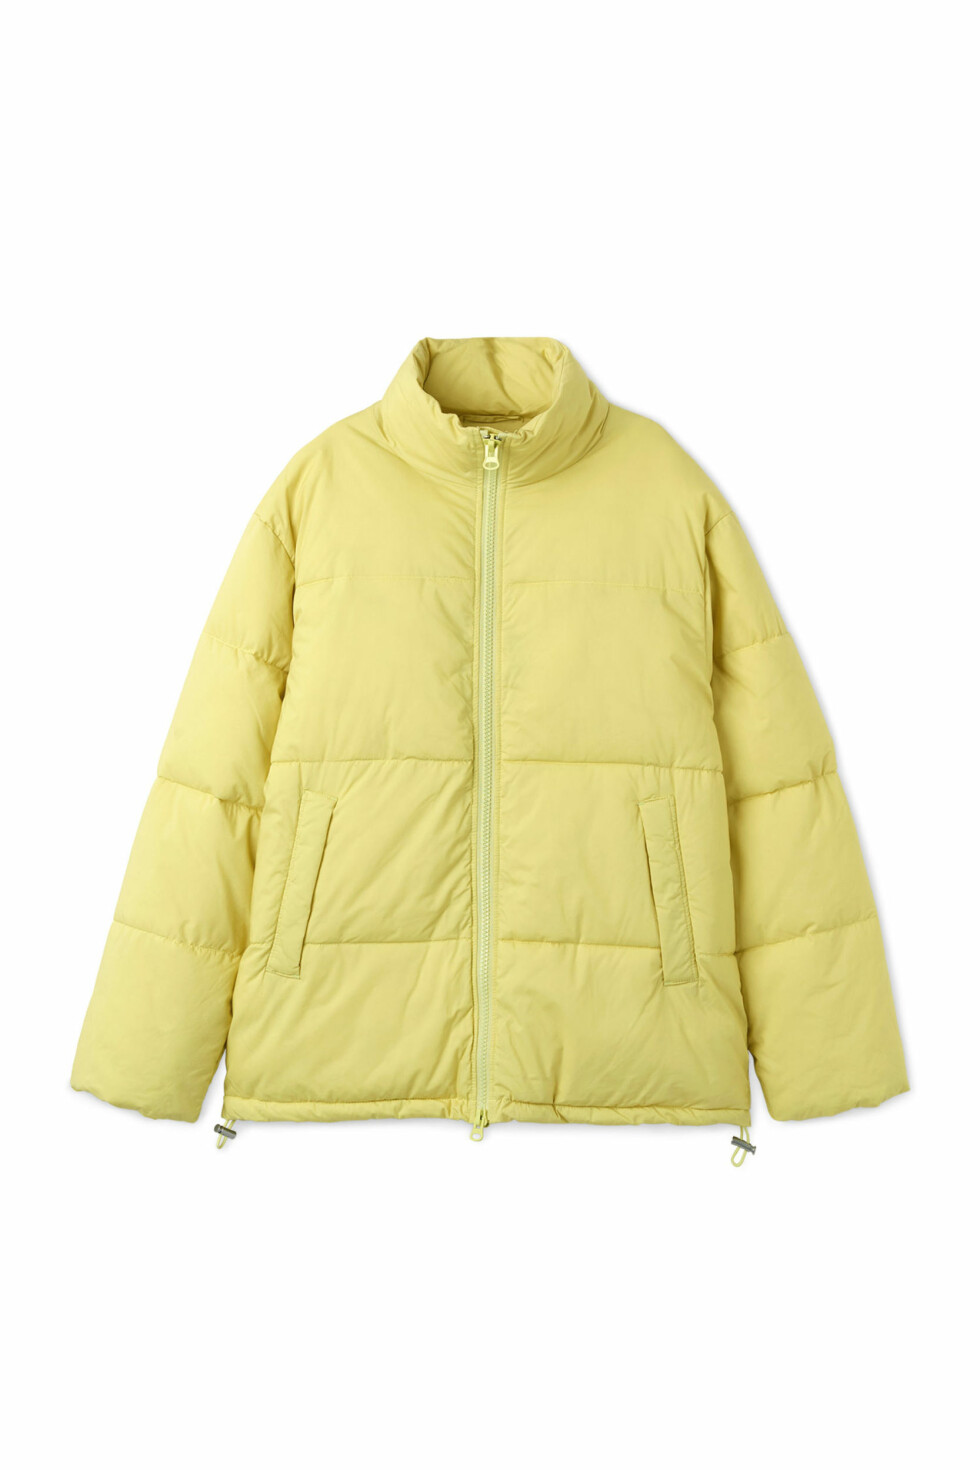 <strong>Jakke fra Weekday |1200,-| https:</strong>//www.weekday.com/en_sek/women/categories/all/_jcr_content/subdepartmentPar/productlisting.products/product.earth-jacket-dusty-olive.0518057001.html